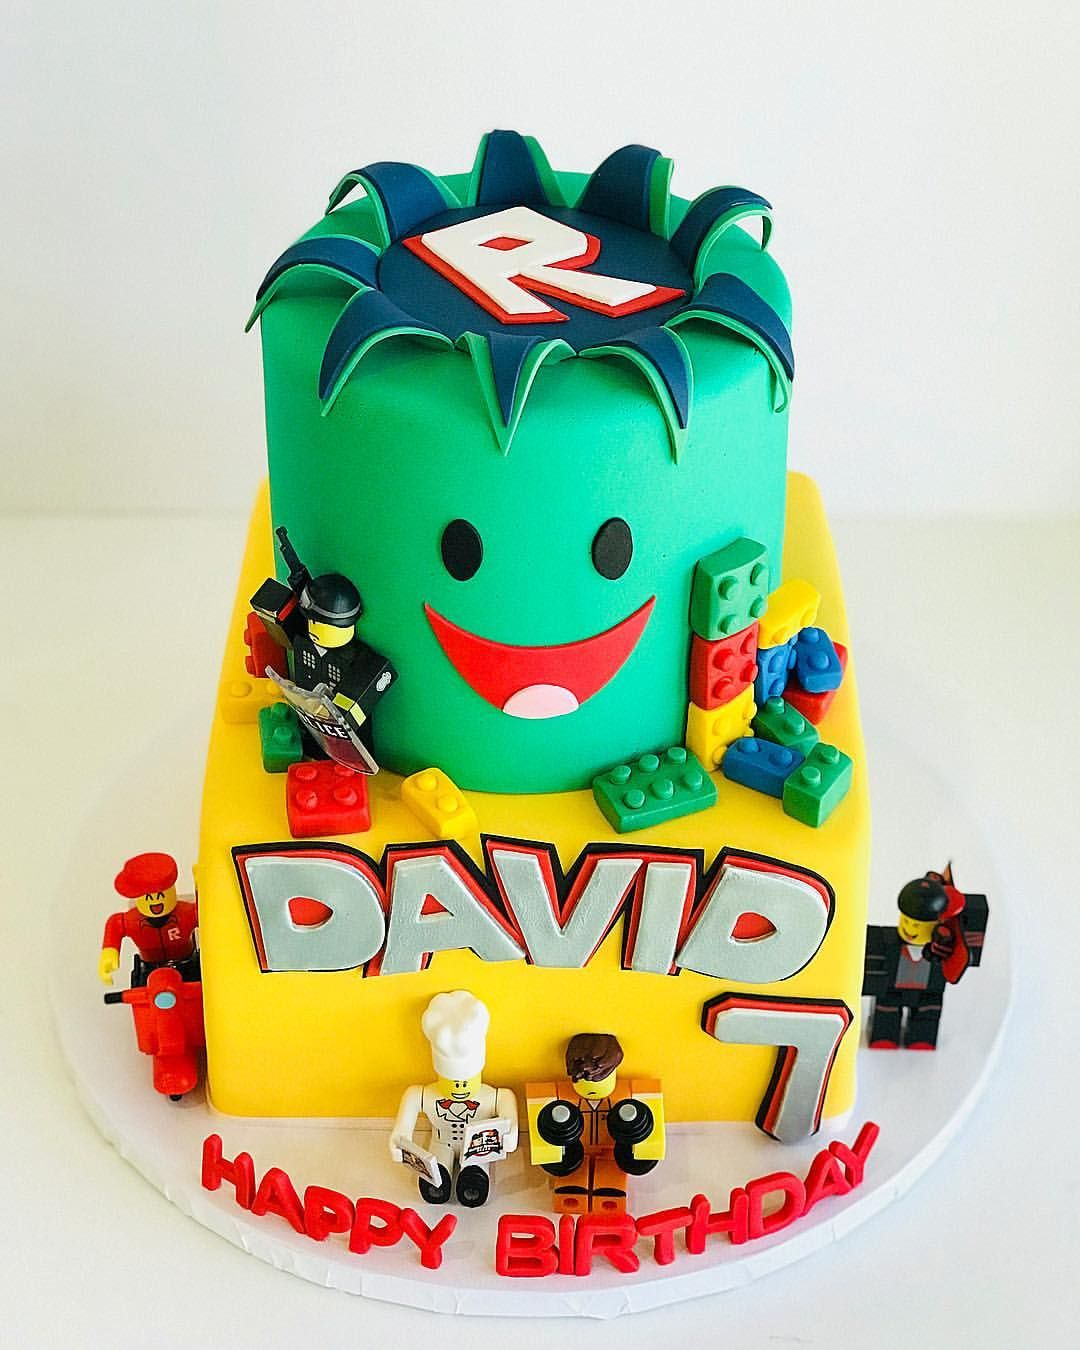 Roblox Cake For Boy Happy 7th Birthday David Robloxcake Legocake Purpleelephantcakes Phoenixfoodie Phoenixeats Phoenixcustomcakes 7th Birthday Cakes Birthday Cake Kids Cake